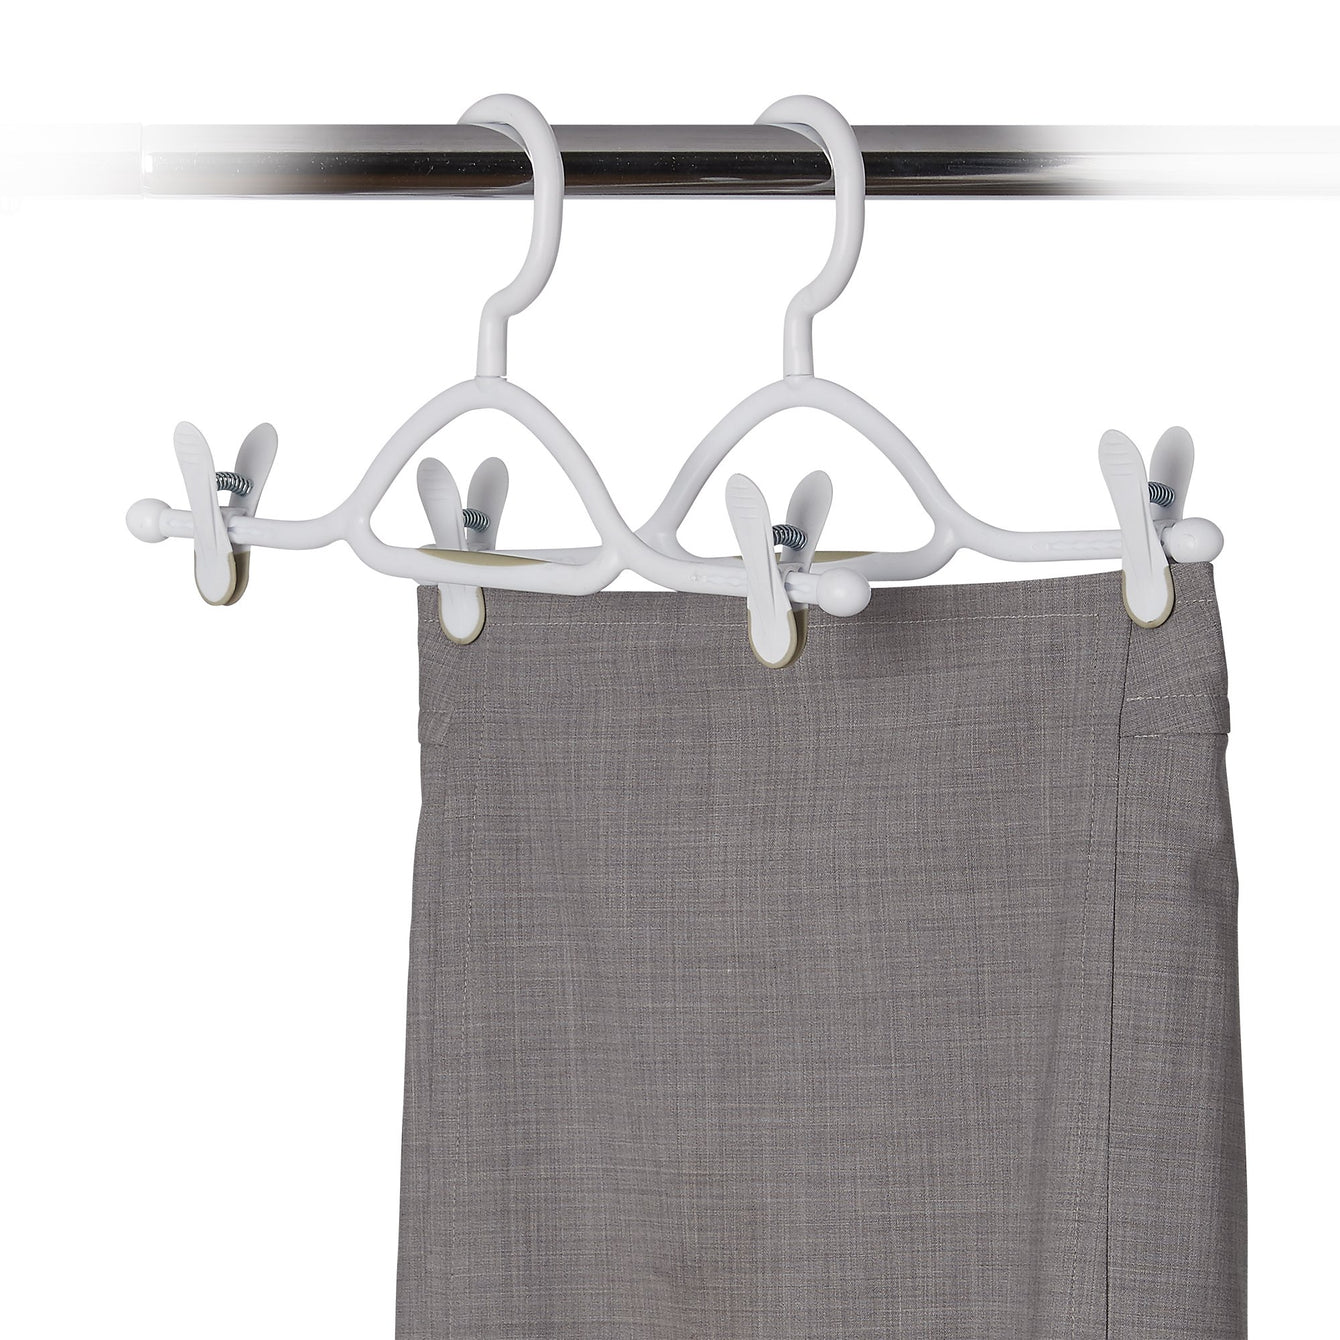 3 Pack Plastic Skirt Hanger with Non-Slip Clips - Style 6400